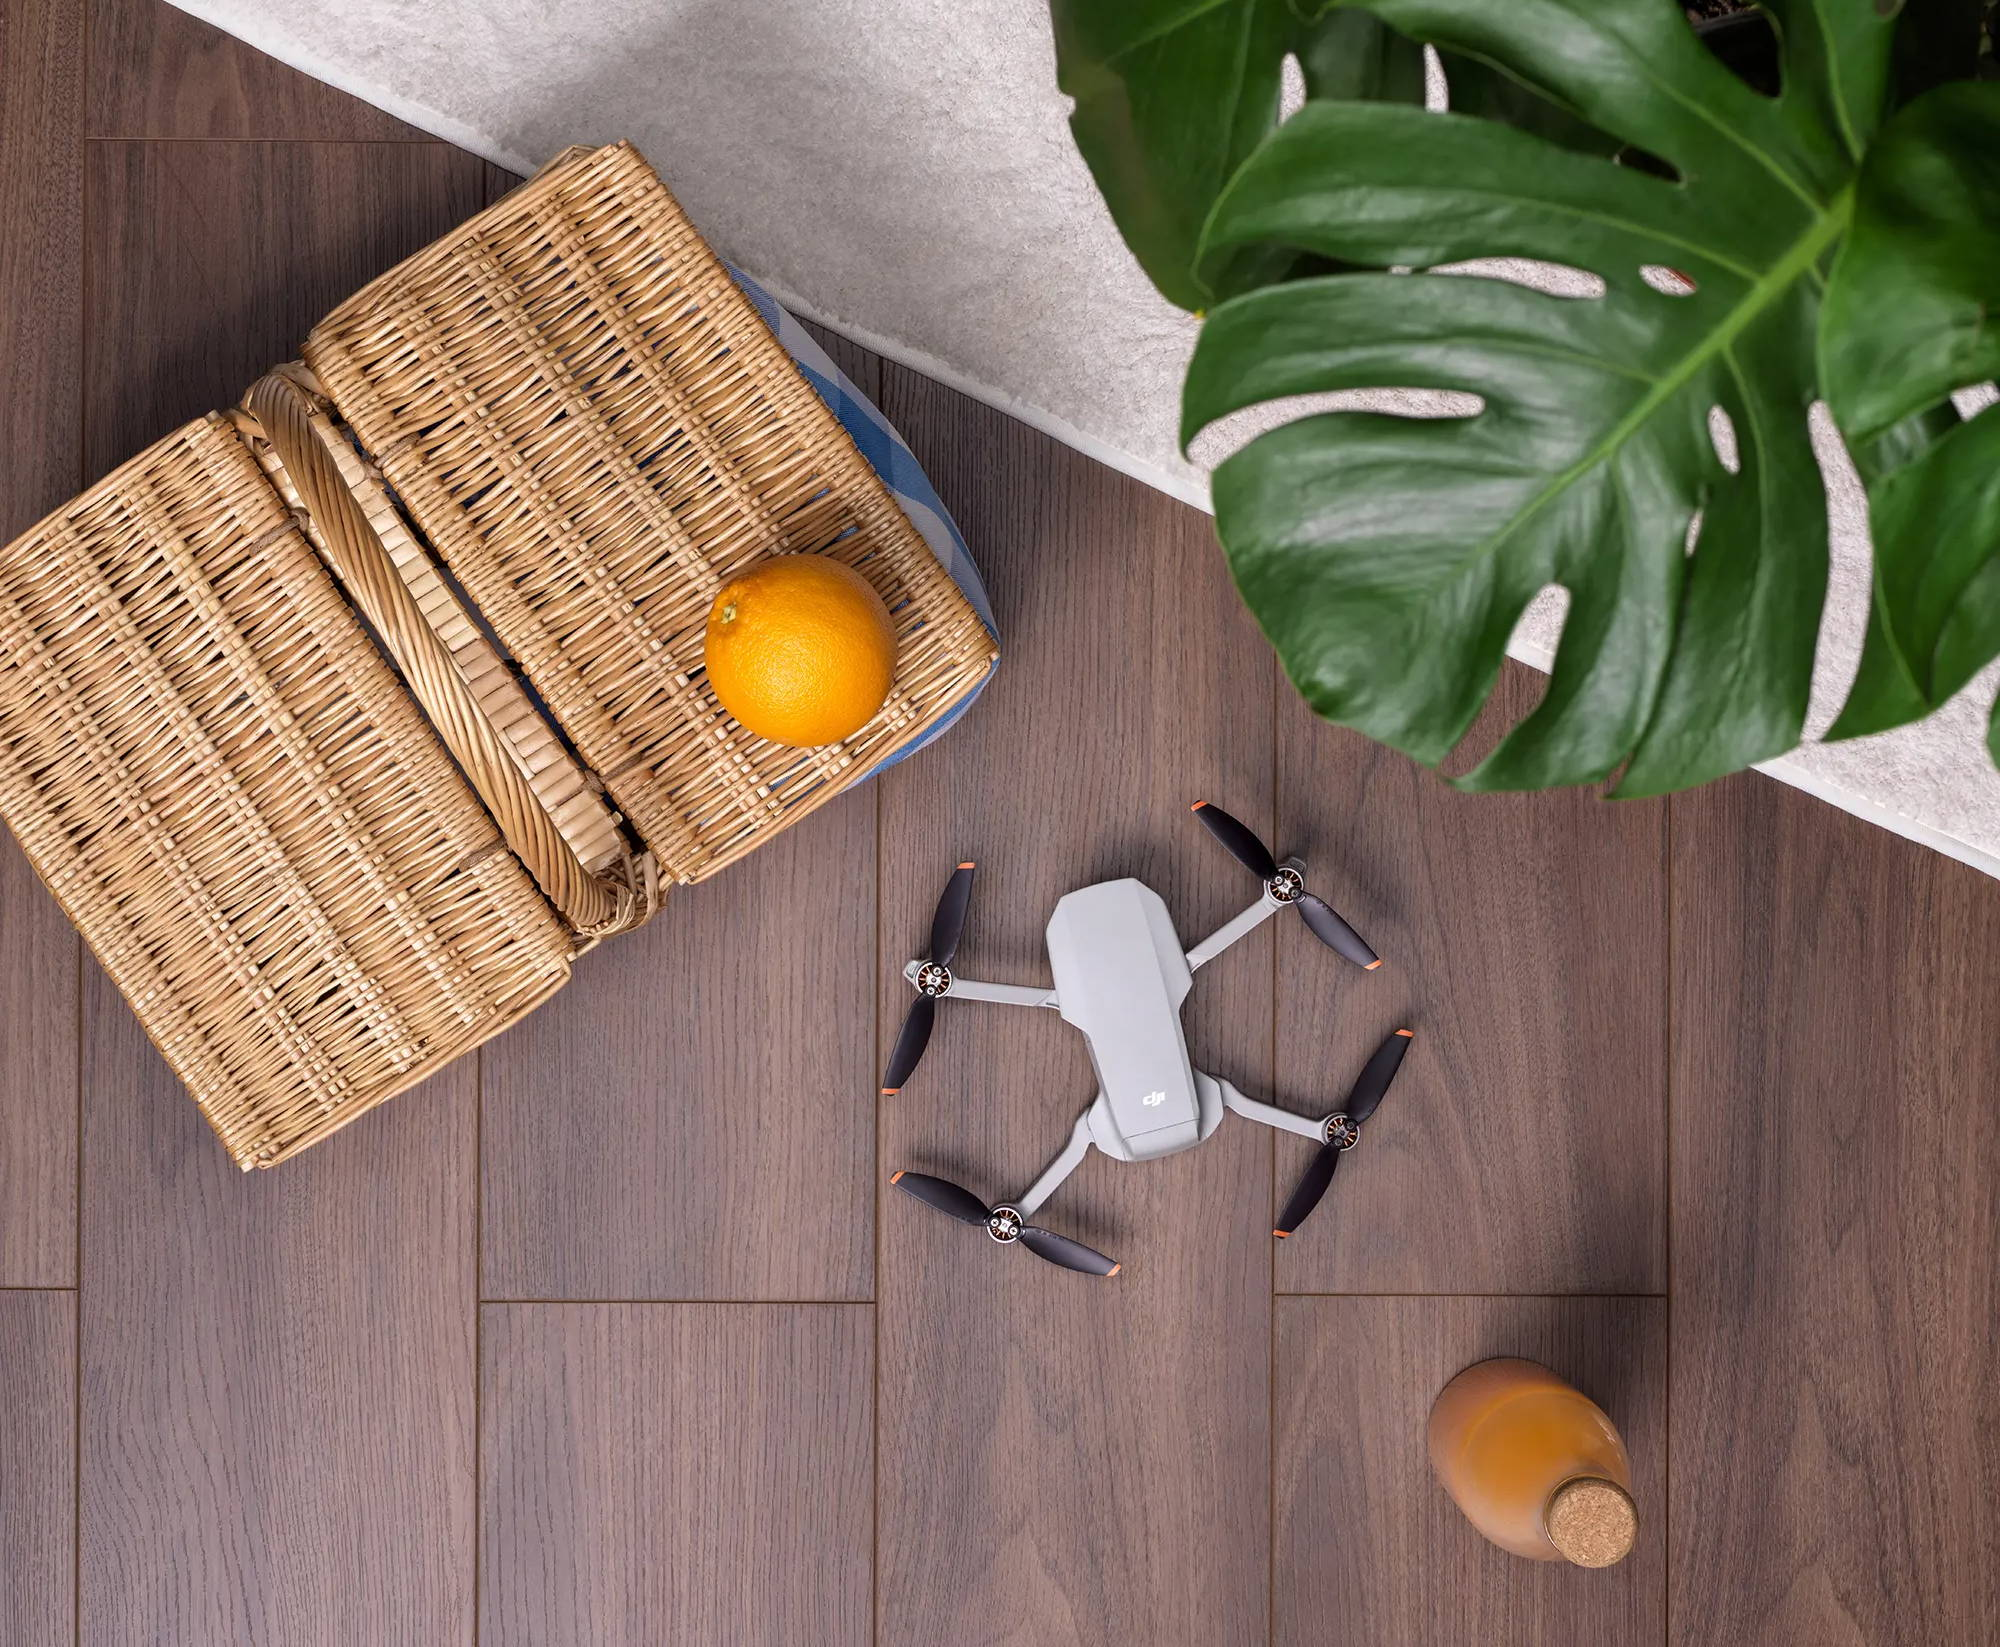 DRONE BUYING GUIDE 2021 - CHOOSING THE RIGHT DRONE